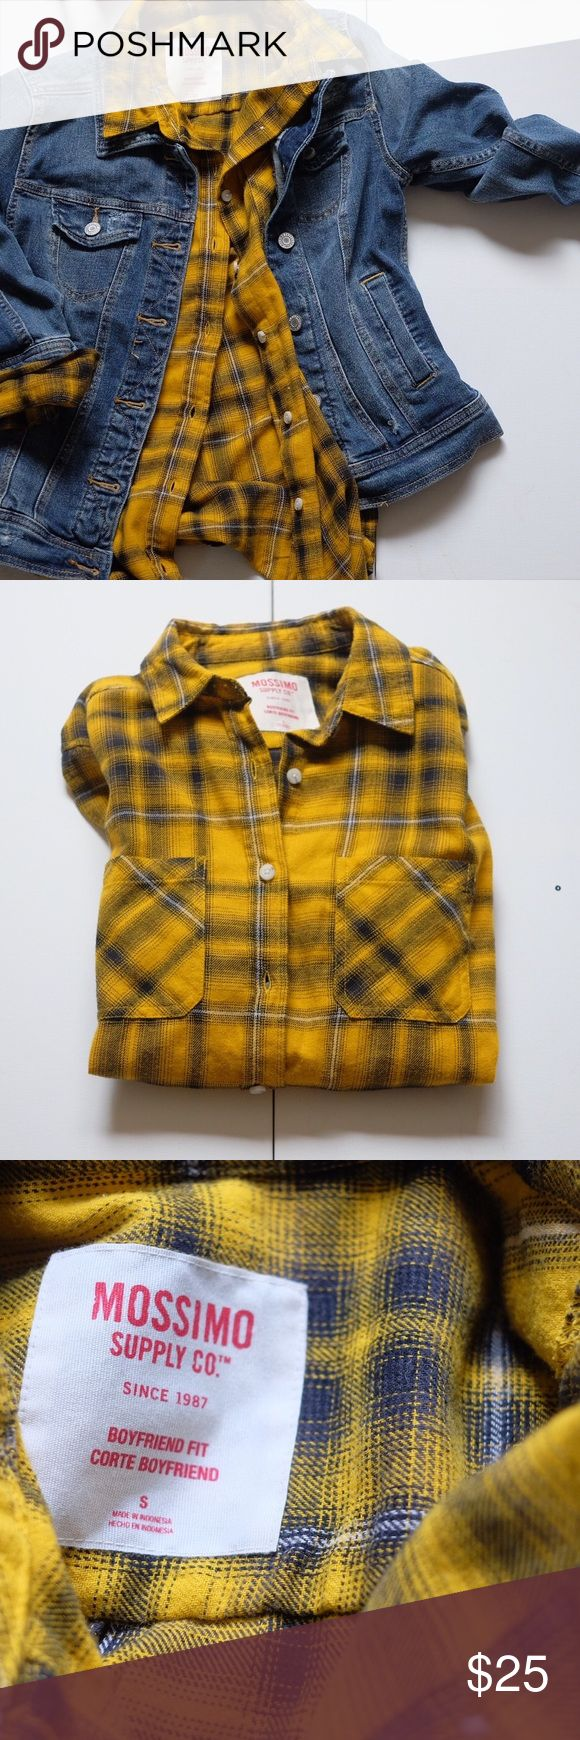 Yellow & black plaid flannel Yellow & black plaid flannel. Warm, basically new flannel. NOT URBAN OUTFITTERS TAGGED FOR EXPOSURE Urban Outfitters Tops Tees - Long Sleeve